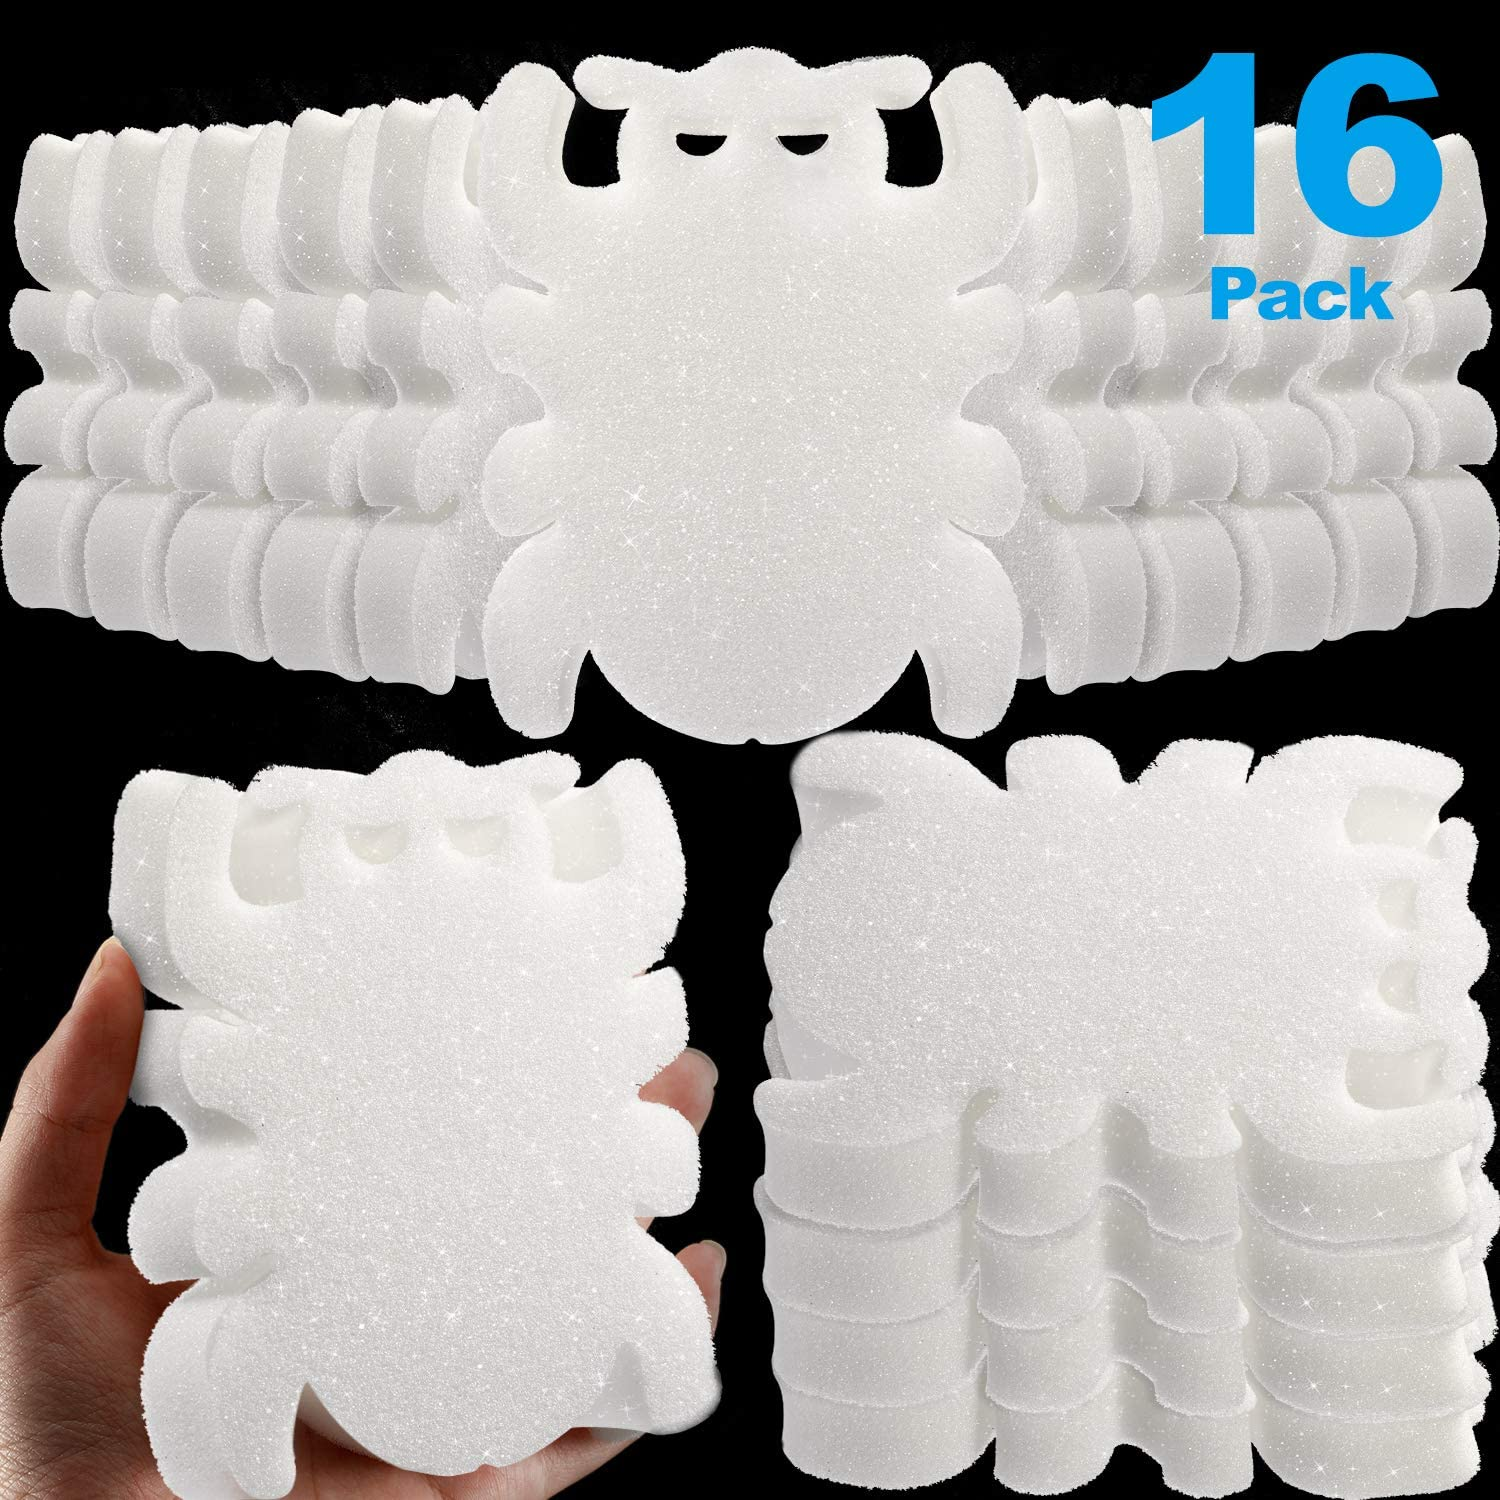 Boao 16 Pieces Creamy Oil Absorbing Scum Sponge for Hot Tub Swimming Pool and